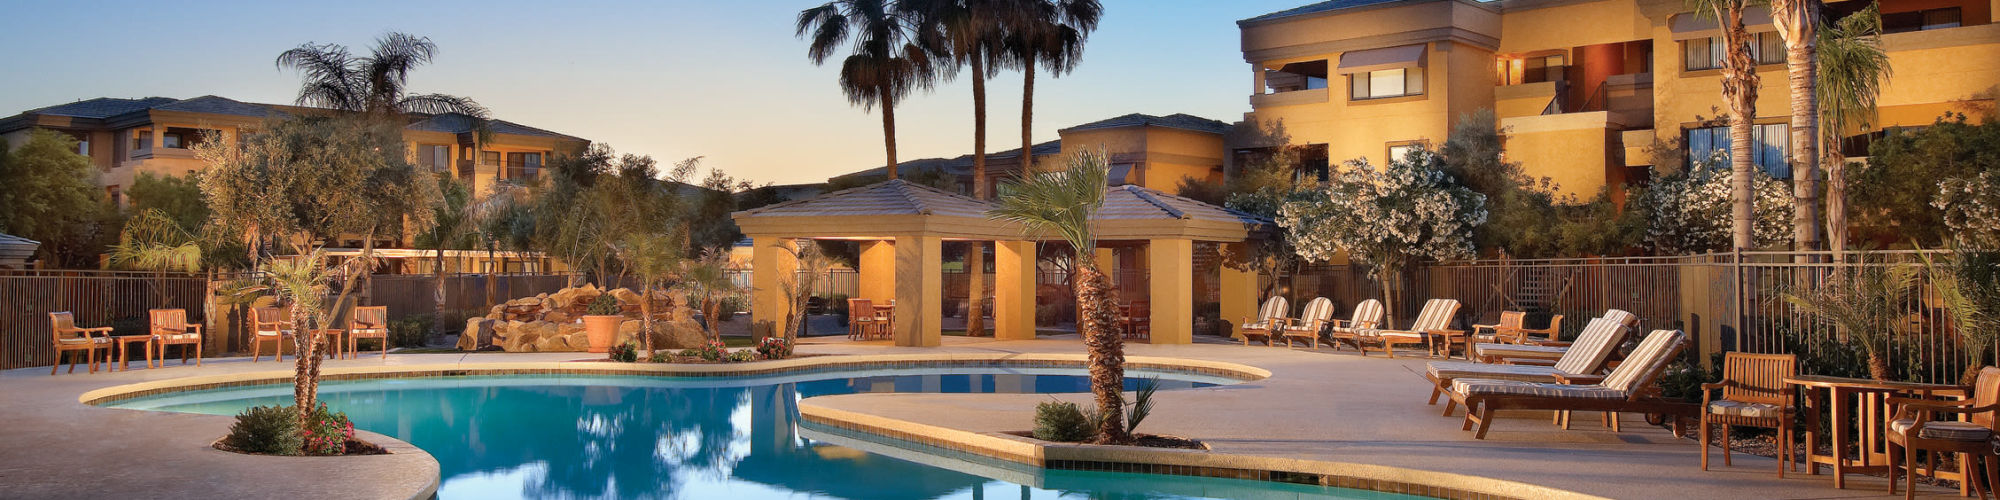 Apply to live at Waterside at Ocotillo in Chandler, Arizona